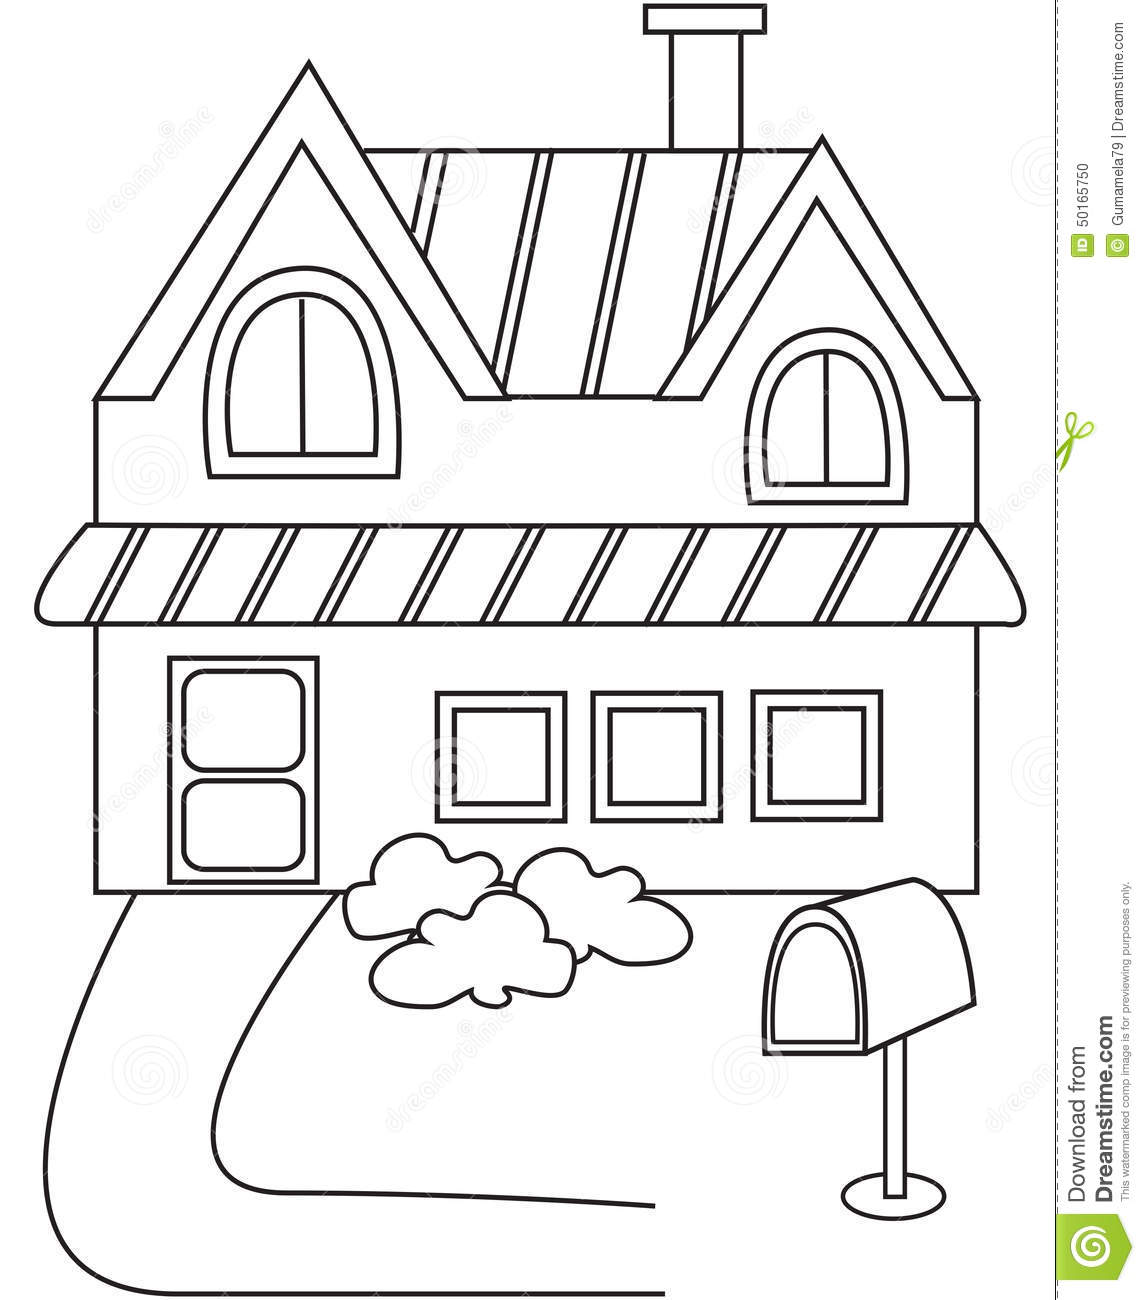 House Coloring Page Stock Illustration Illustration Of